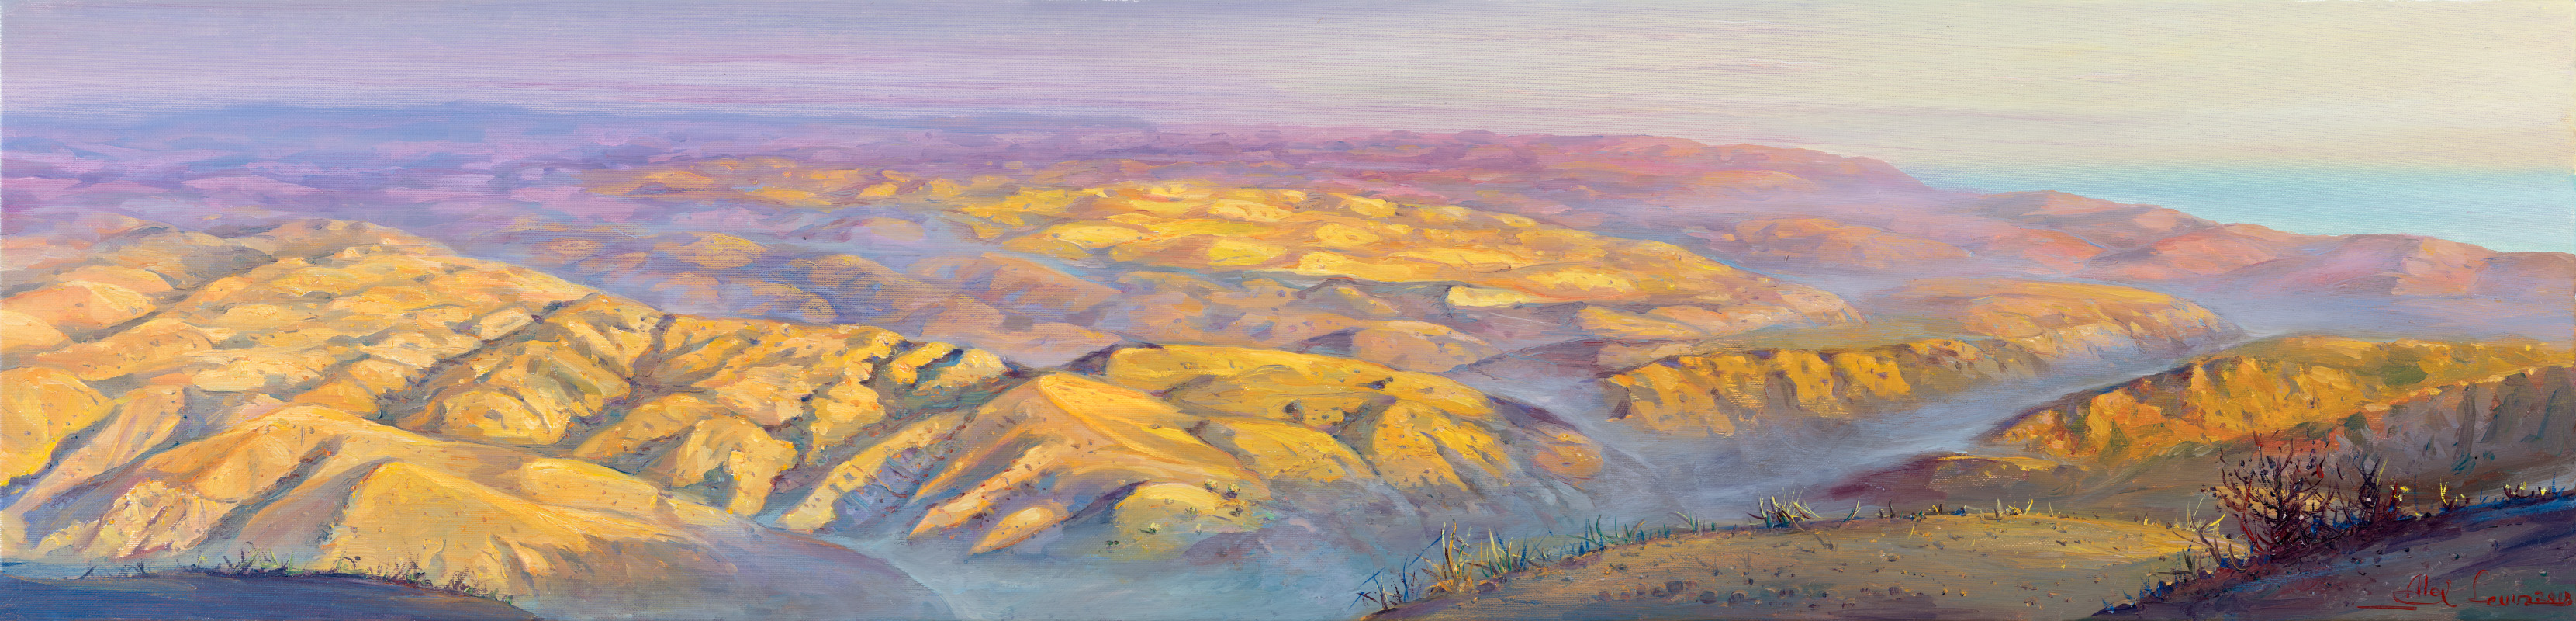 Mountains of the Dead Sea Scrolls, Painting by Alex Levin